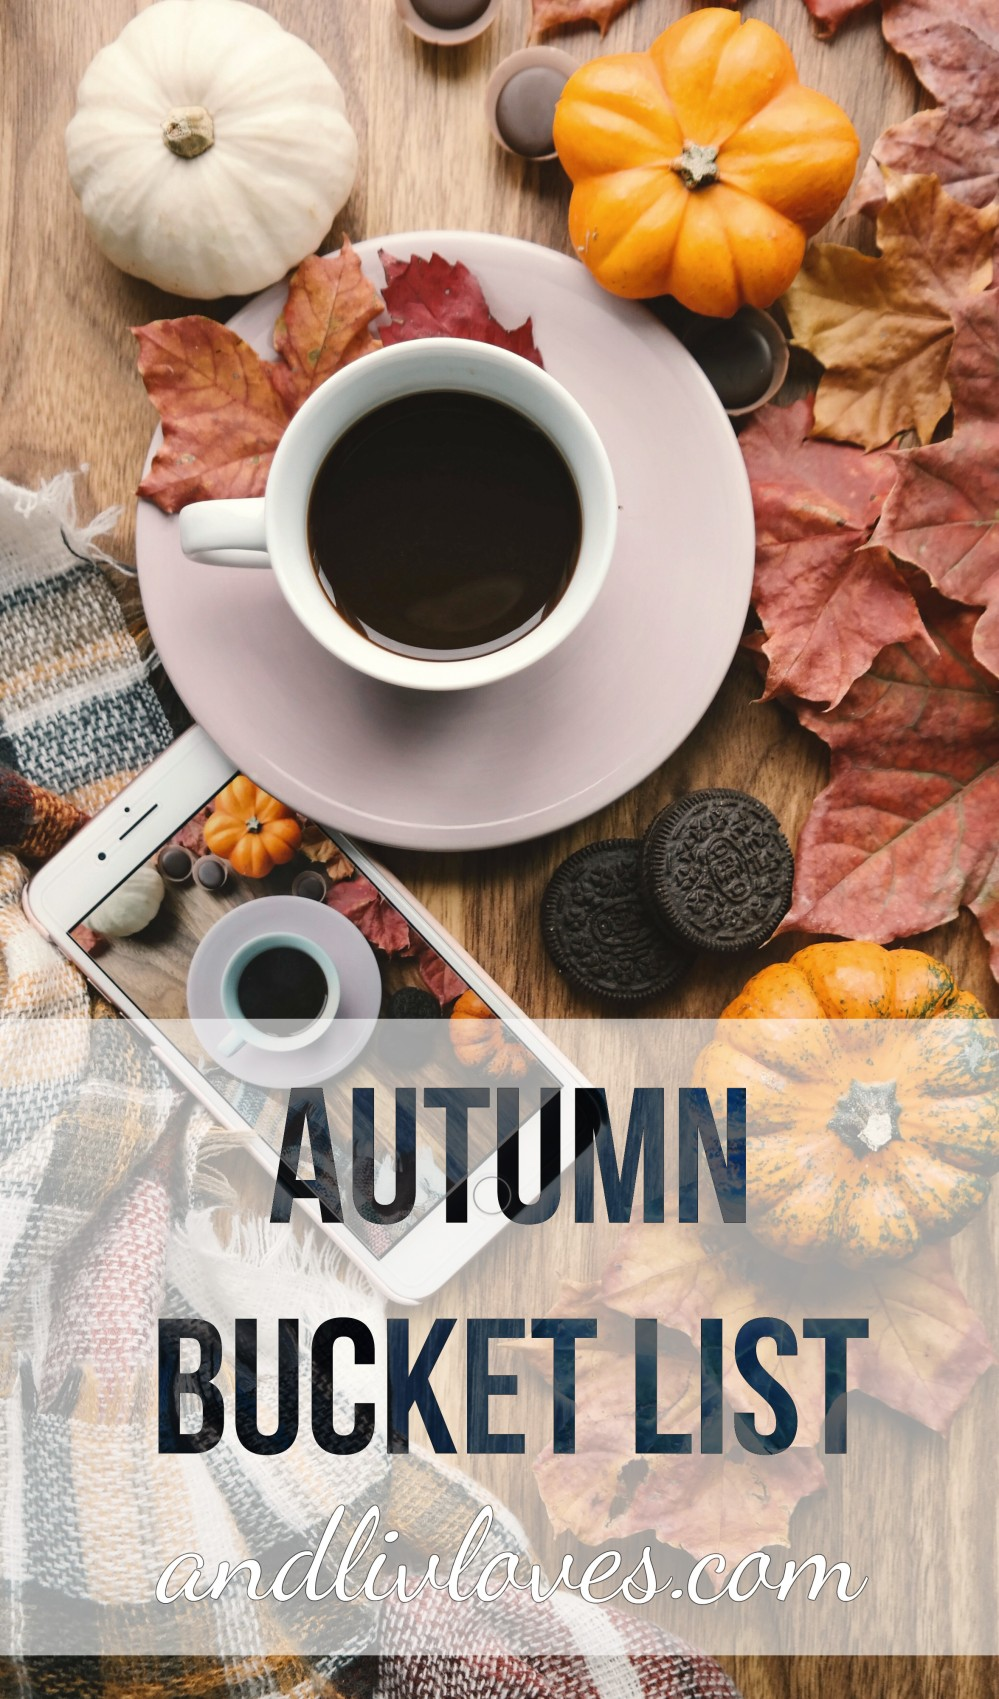 autumn bucket listnew.jpg